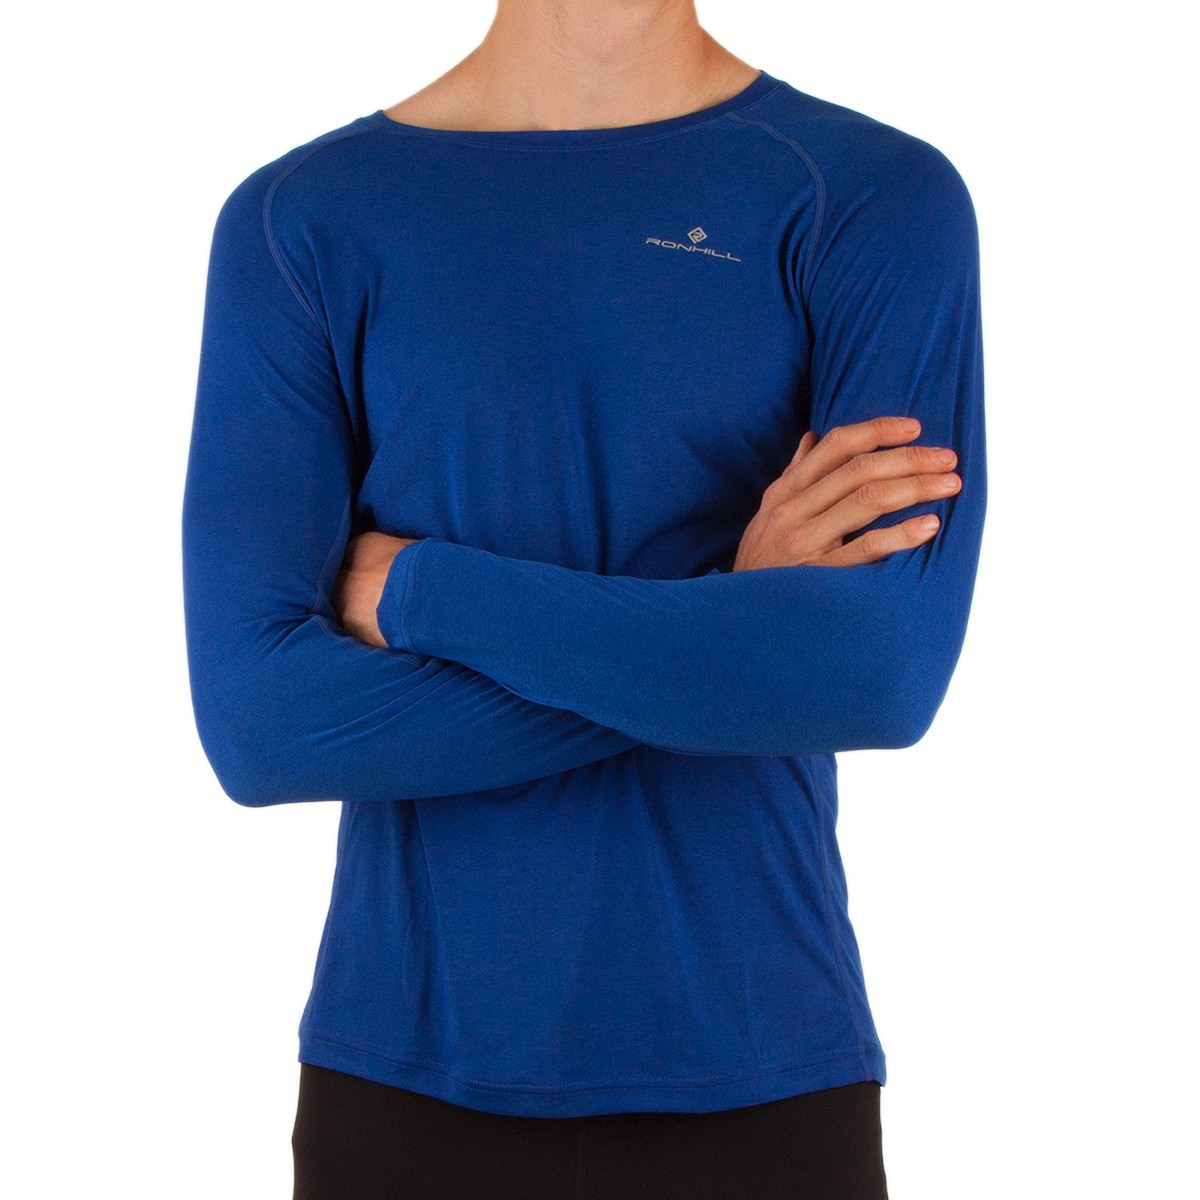 Ronhill Men's Advance Motion Long Sleeve Tee